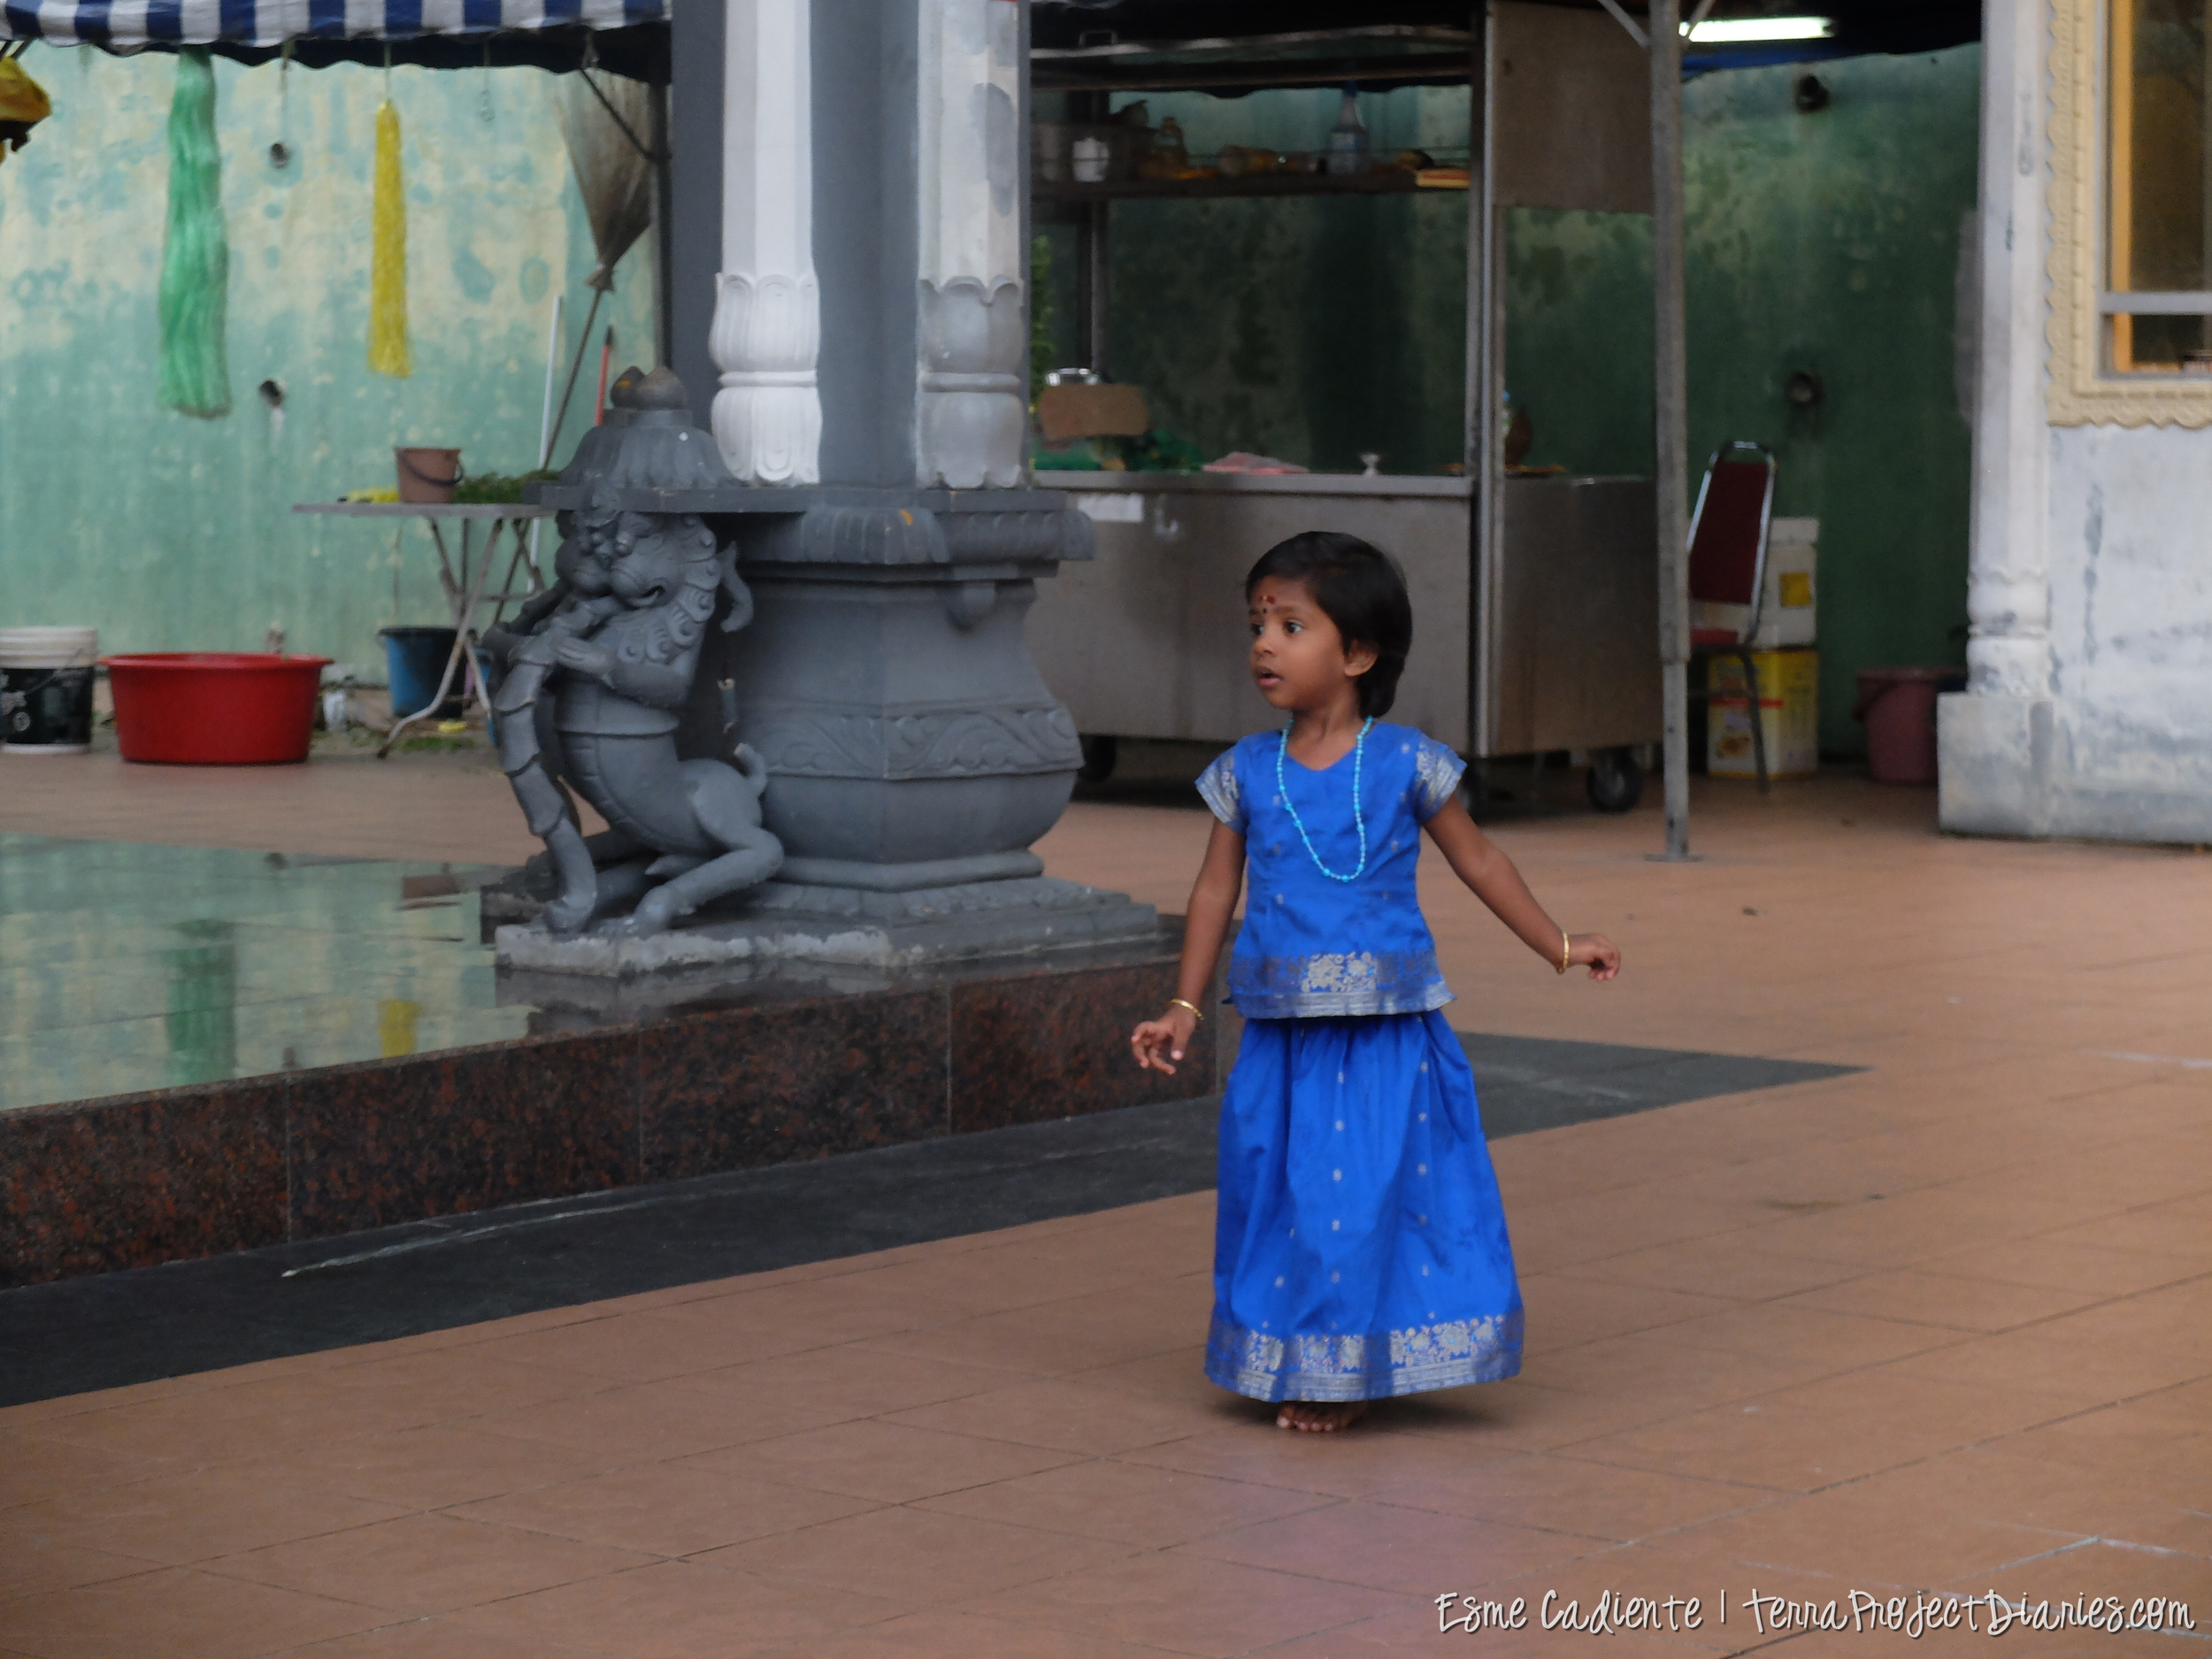 An Indian child runs around an Indian temple